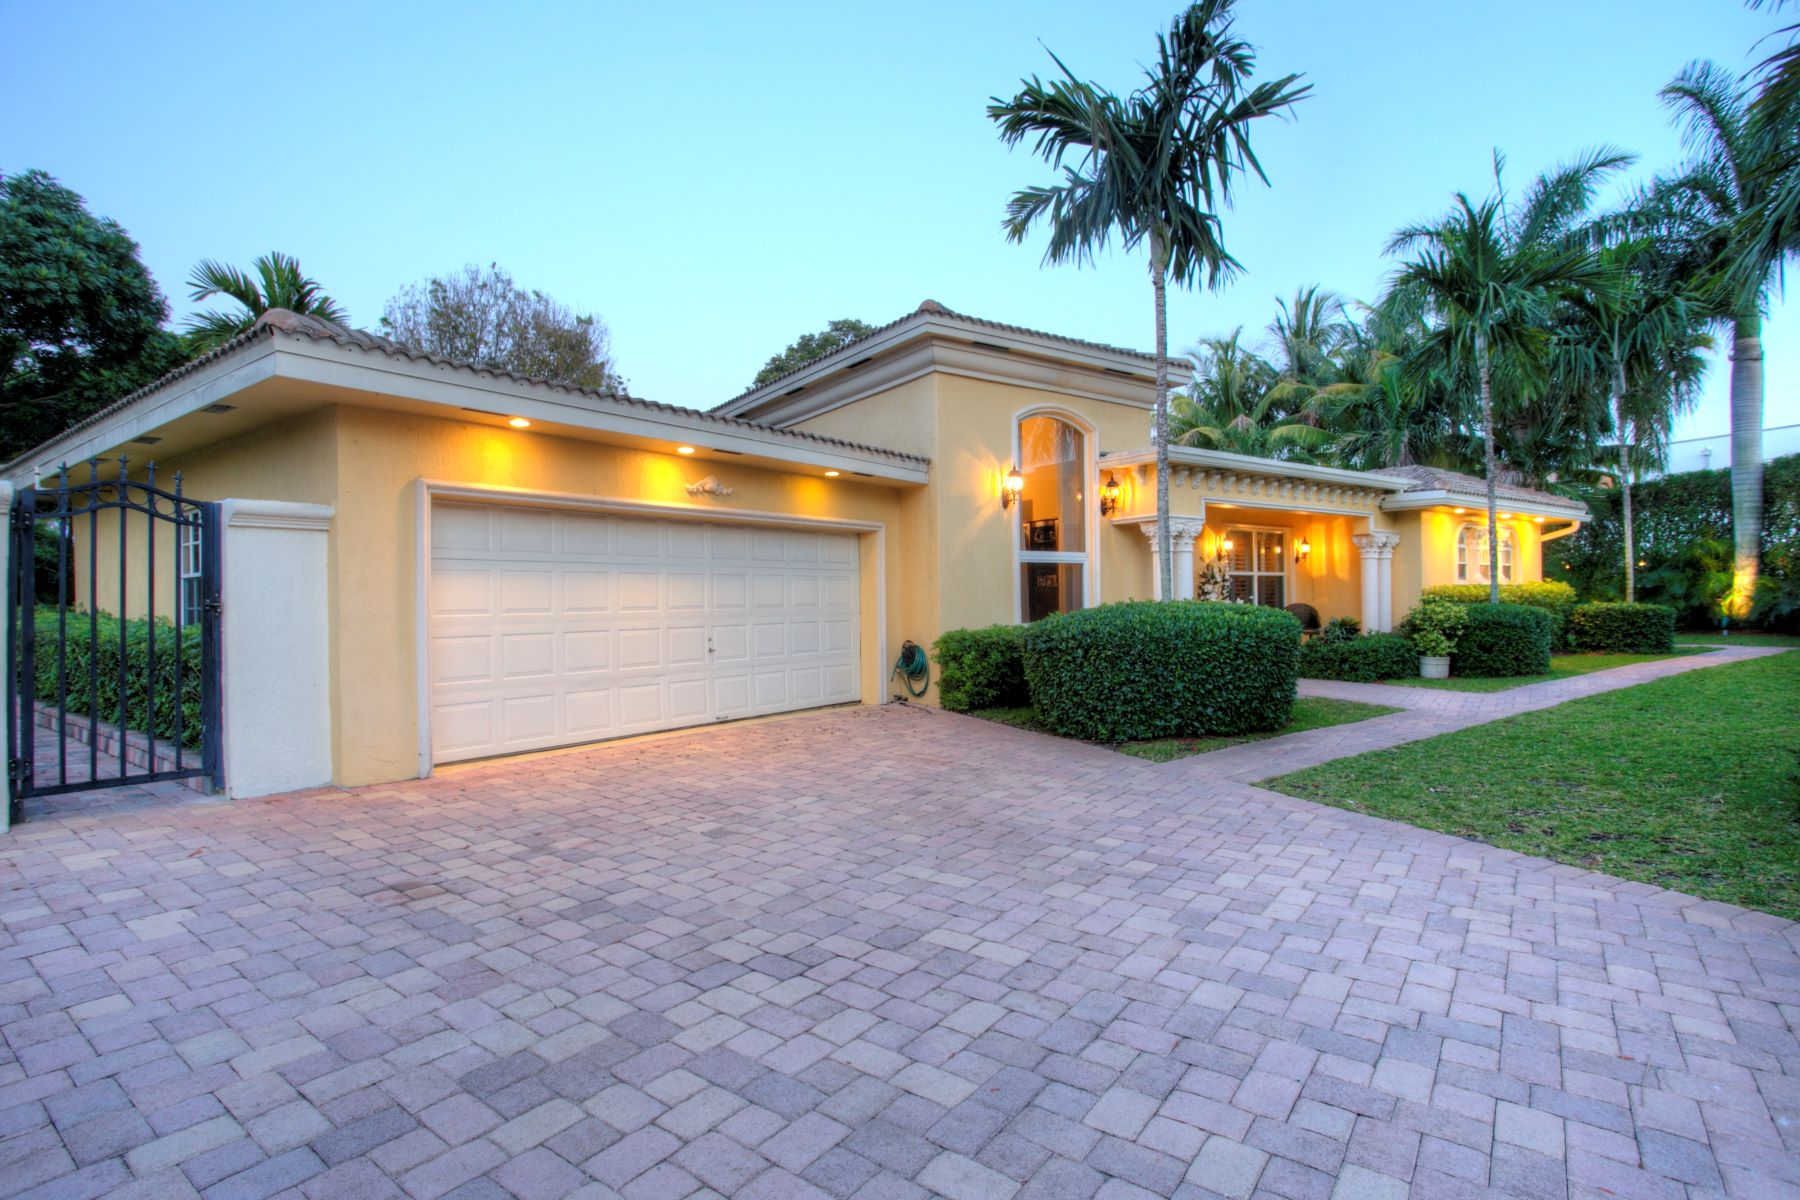 Single Family Home for Rent at 1200 Middle River Drive Fort Lauderdale, Florida 33304 United States